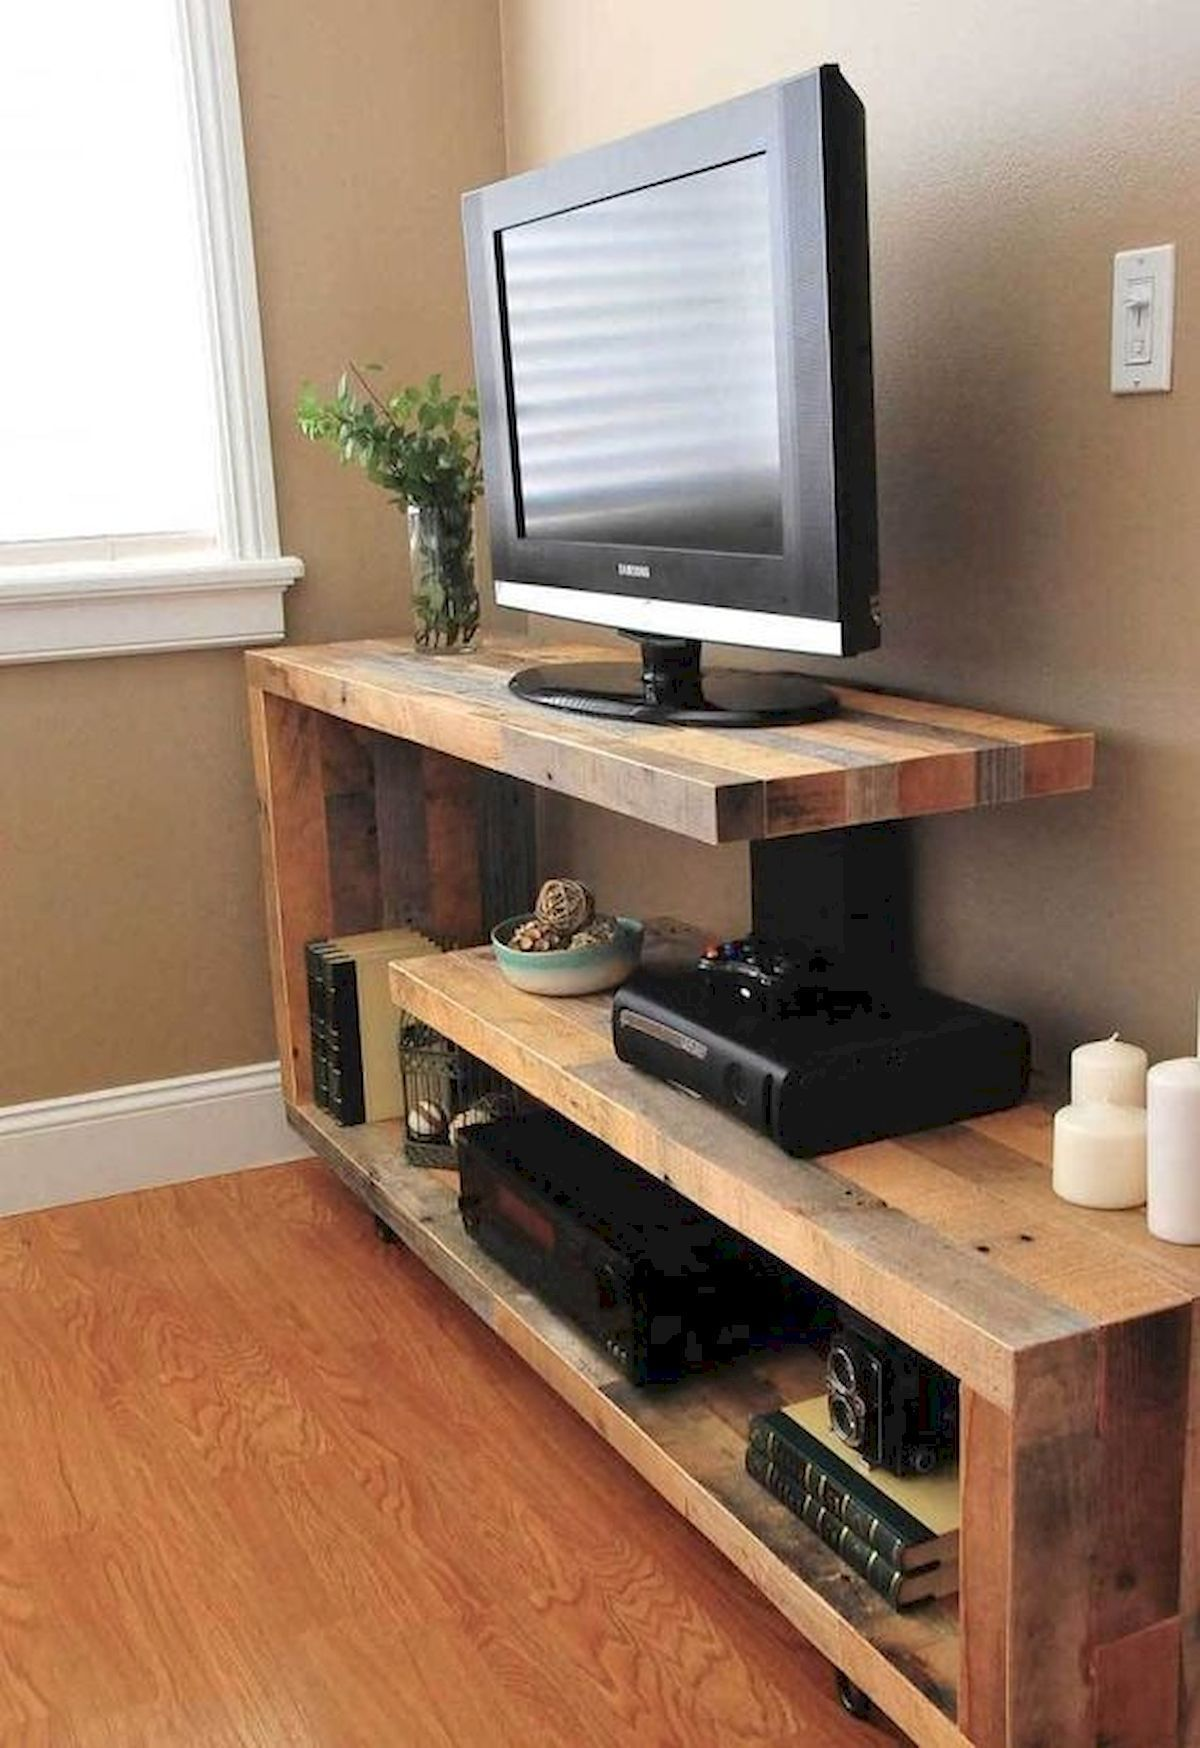 33 Ideas For Pallet Tv Stand 1 33decor Tv Stand Ideas For Small Spaces Living Room Tv Stand Tv Stand Designs